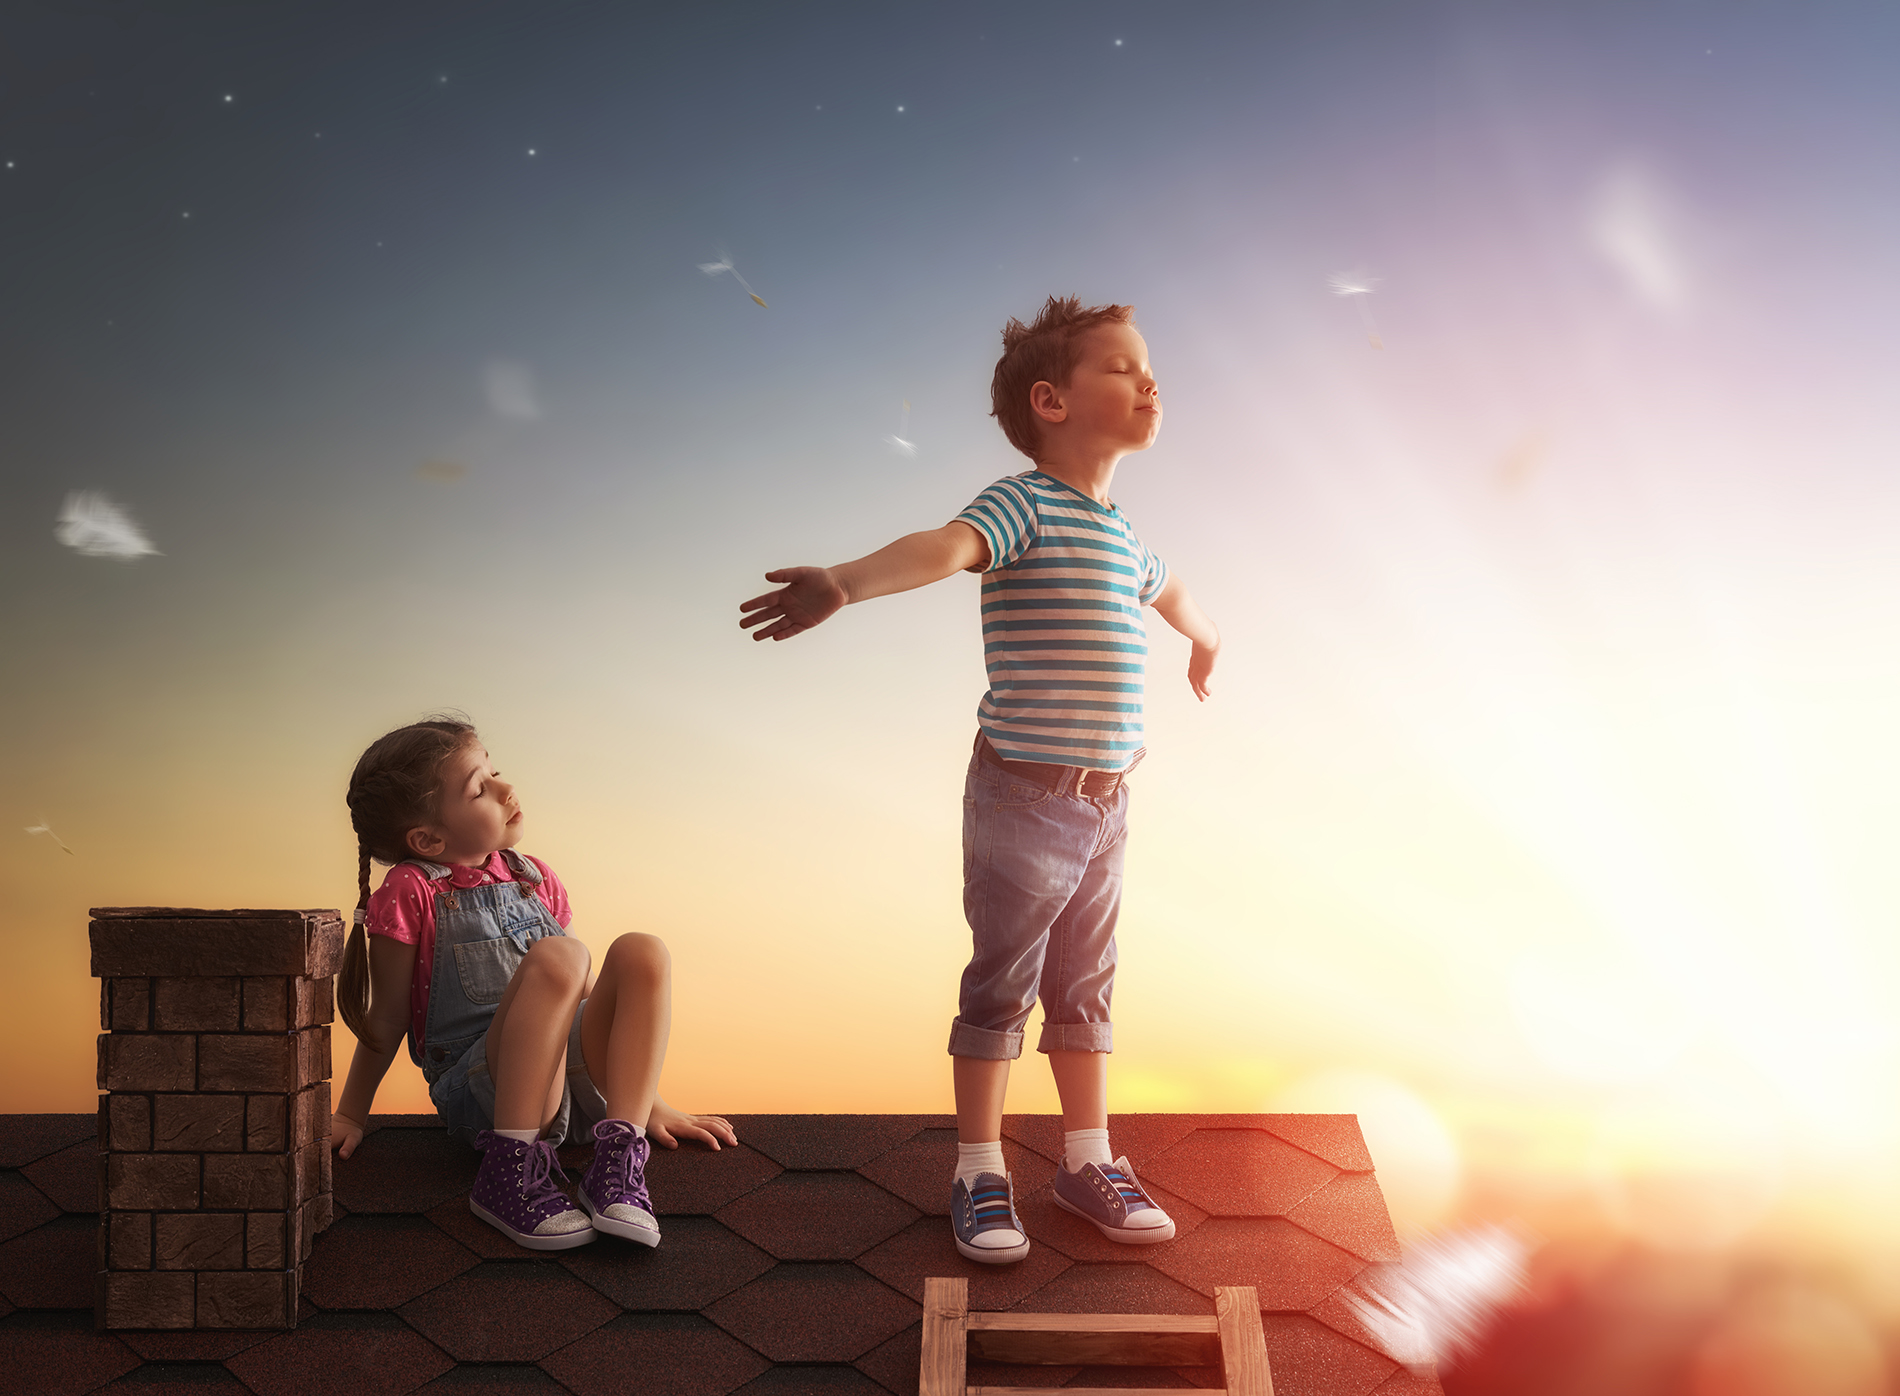 Little boy on the roof with little girl 54546